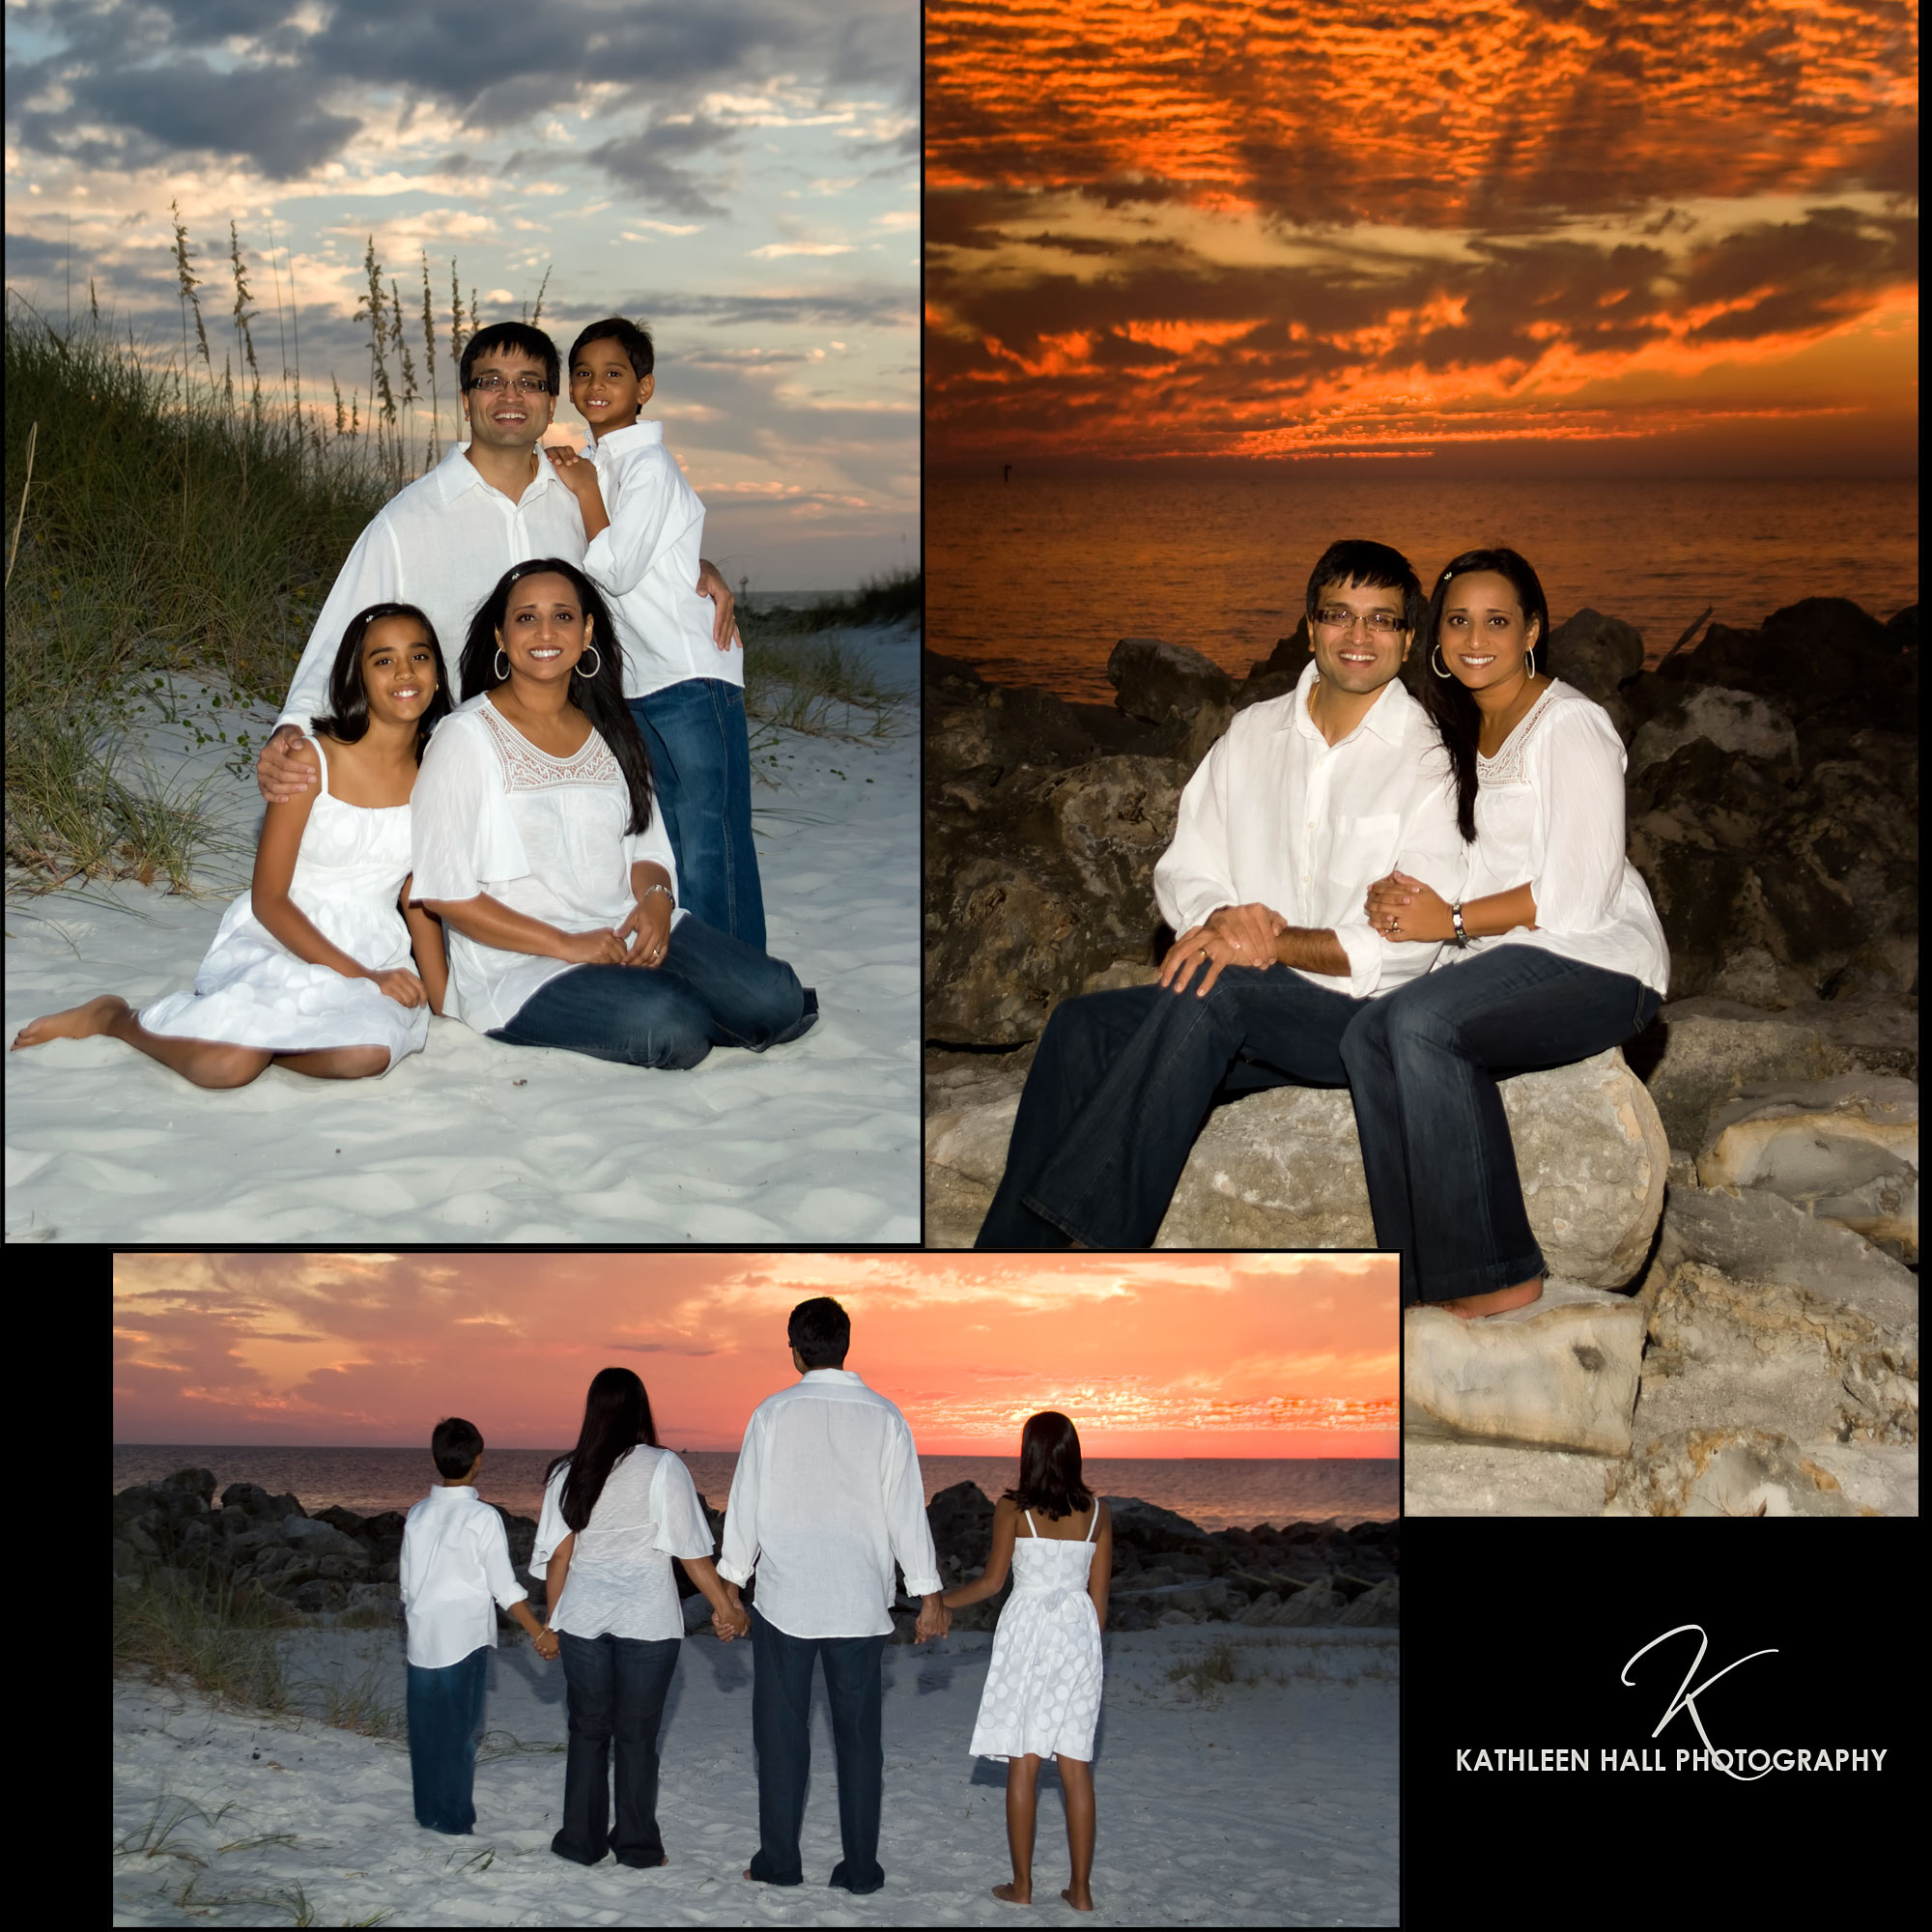 Clearwater Beach sunset portraits